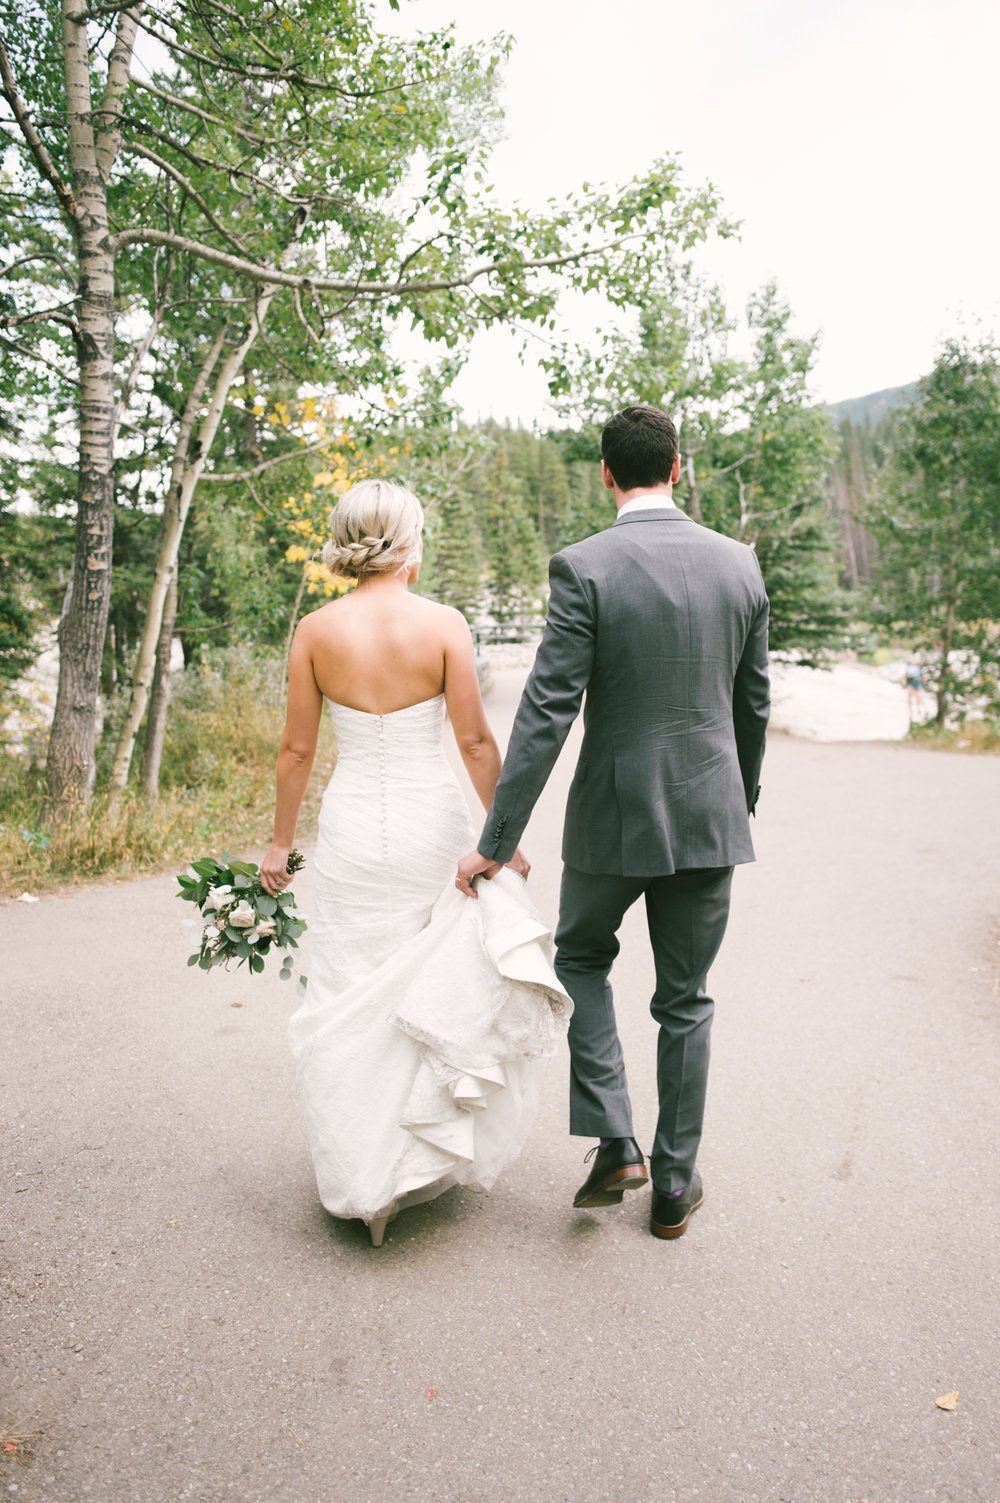 Rocky Mountain Banff Calgary Alberta Wedding-Jessika Hunter Photo-55.JPG